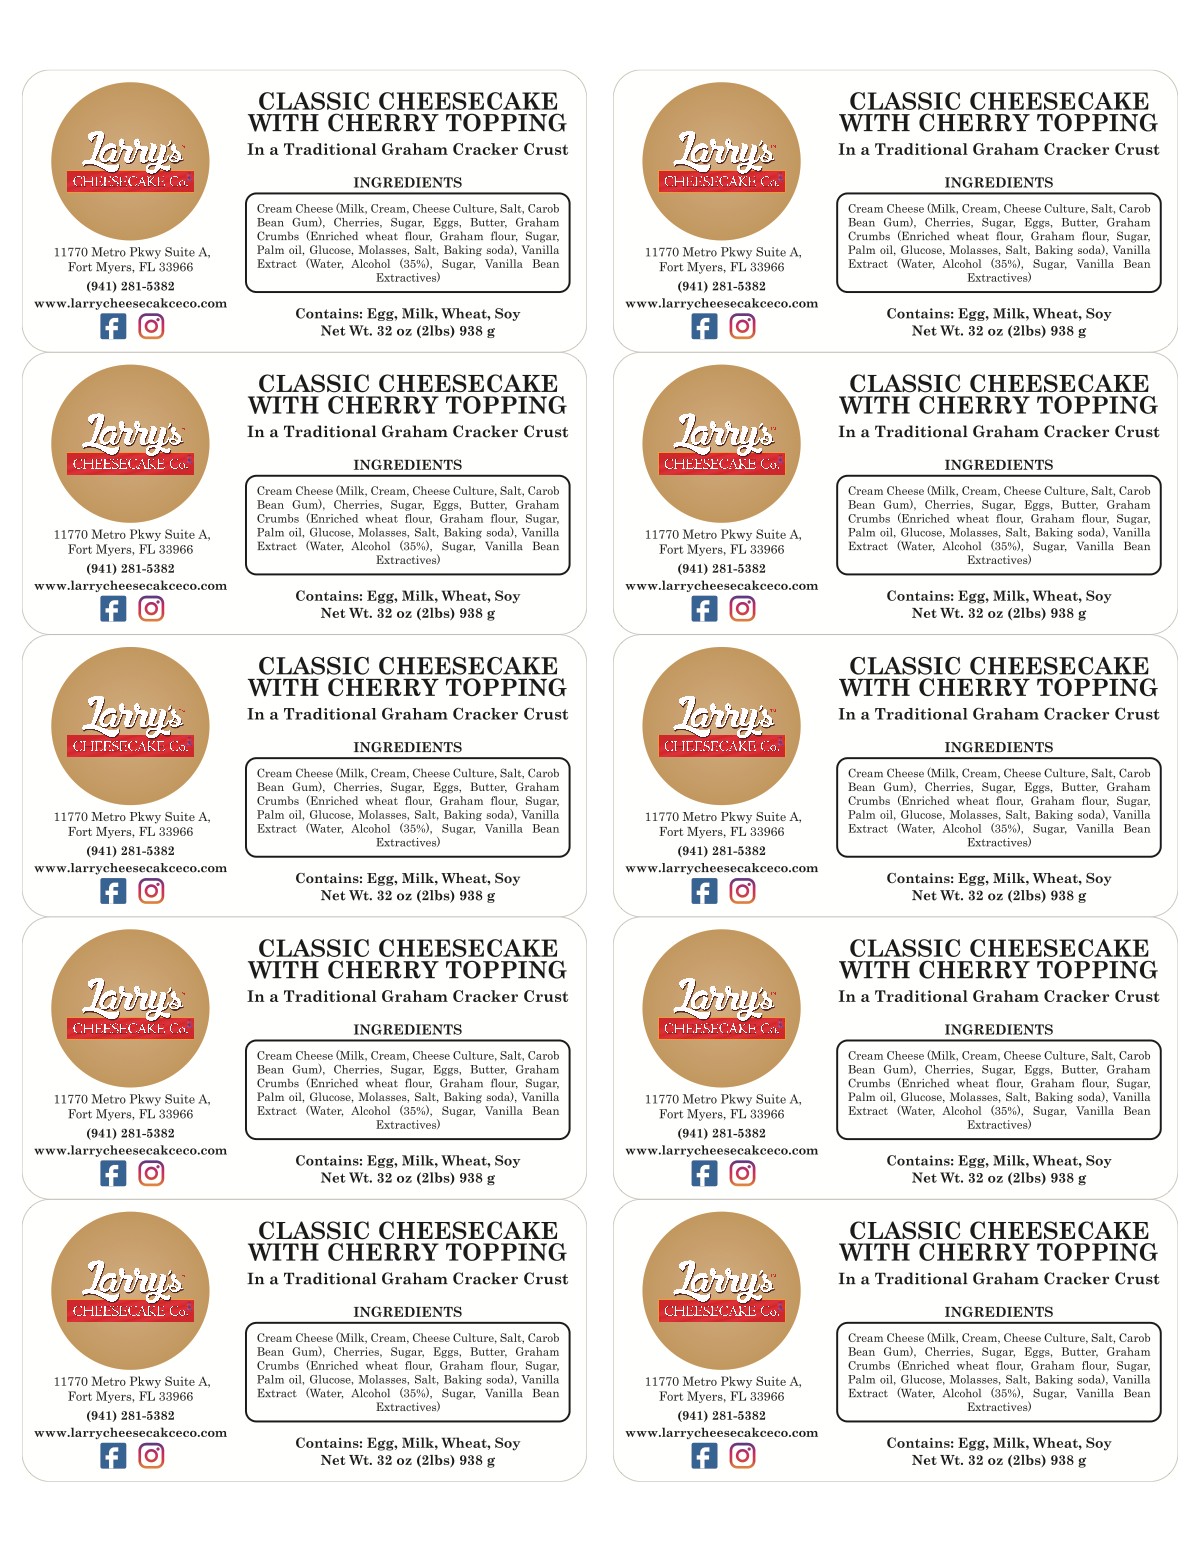 Larry's Cheesecake Co. Food labels